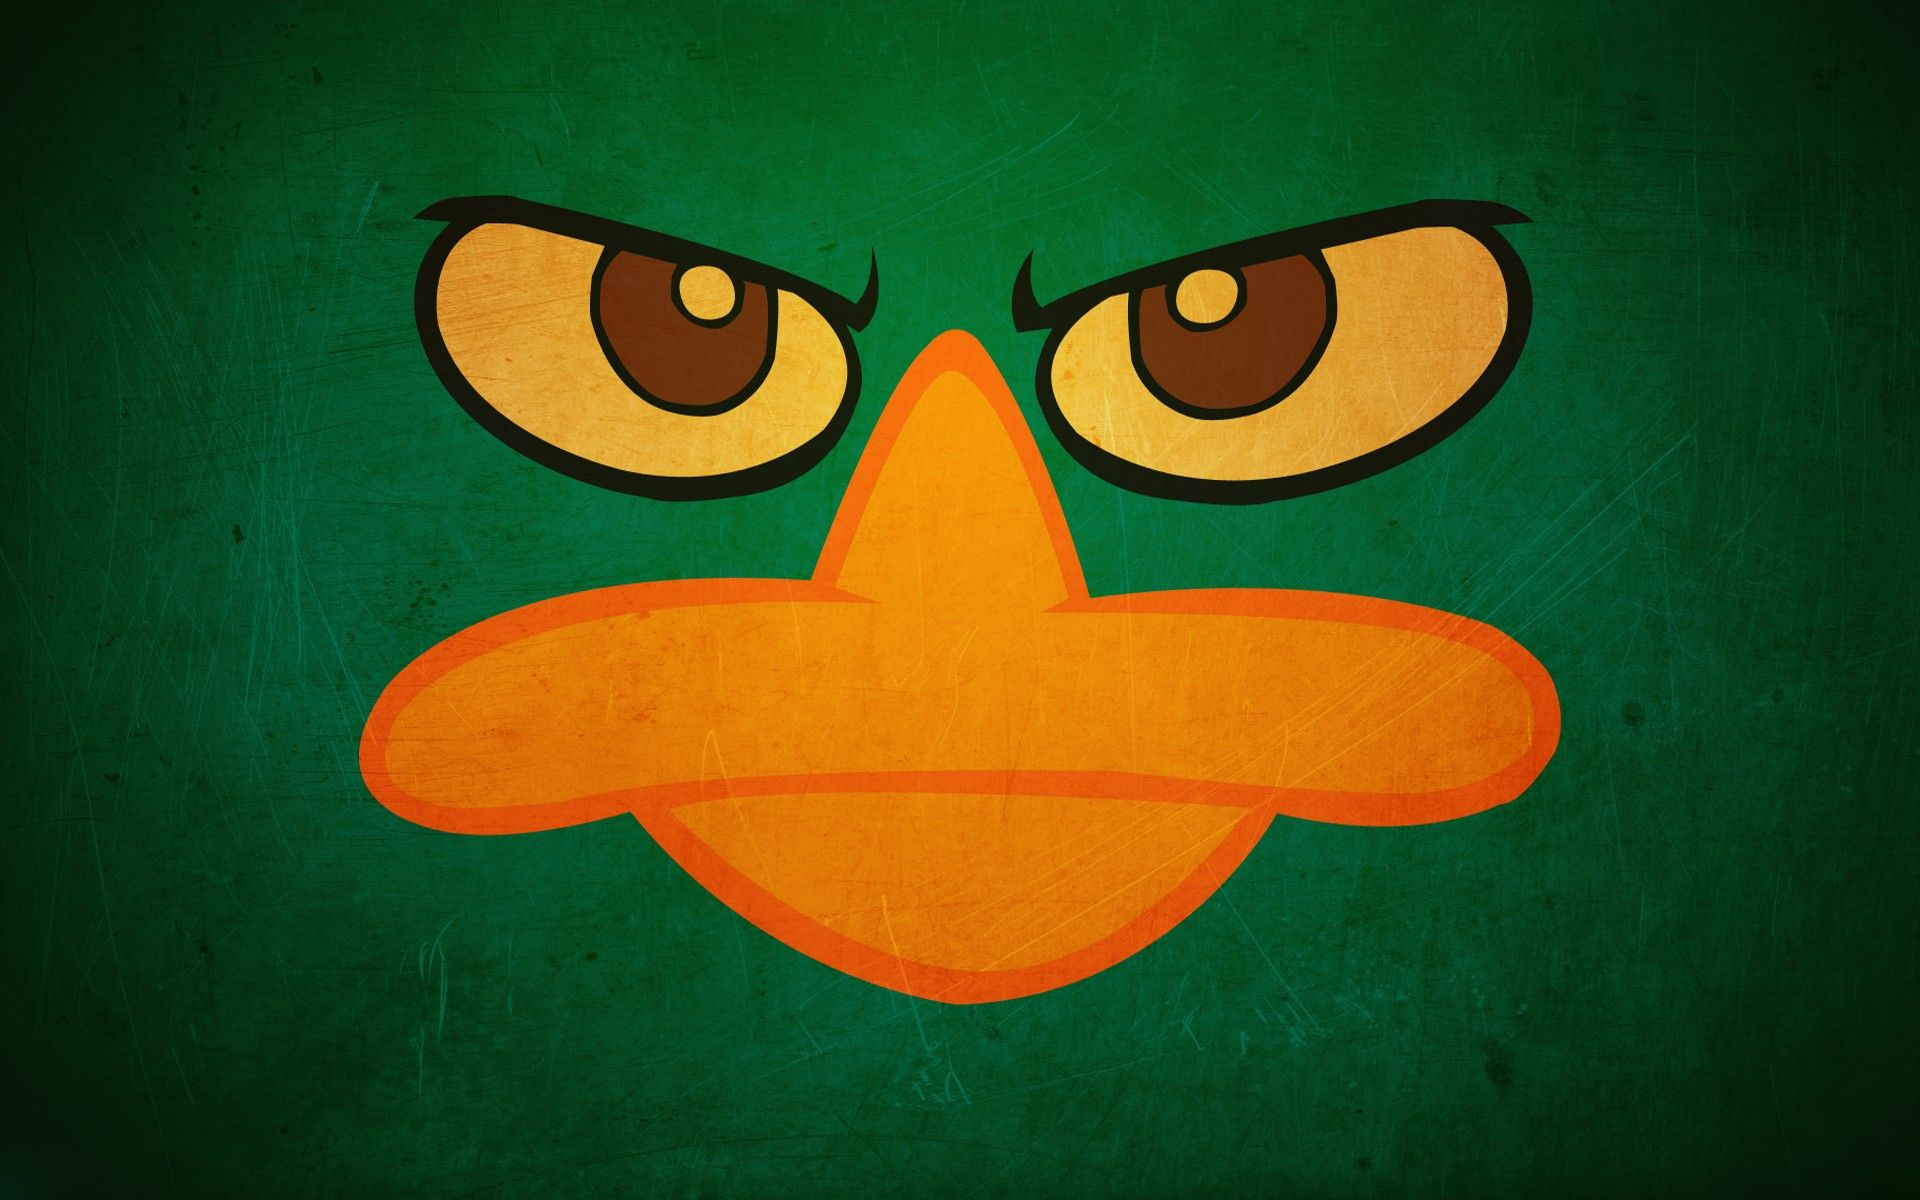 Perry the platypus hd wallpaper search engine hd wallpapers perry the platypus hd wallpaper search engine voltagebd Images